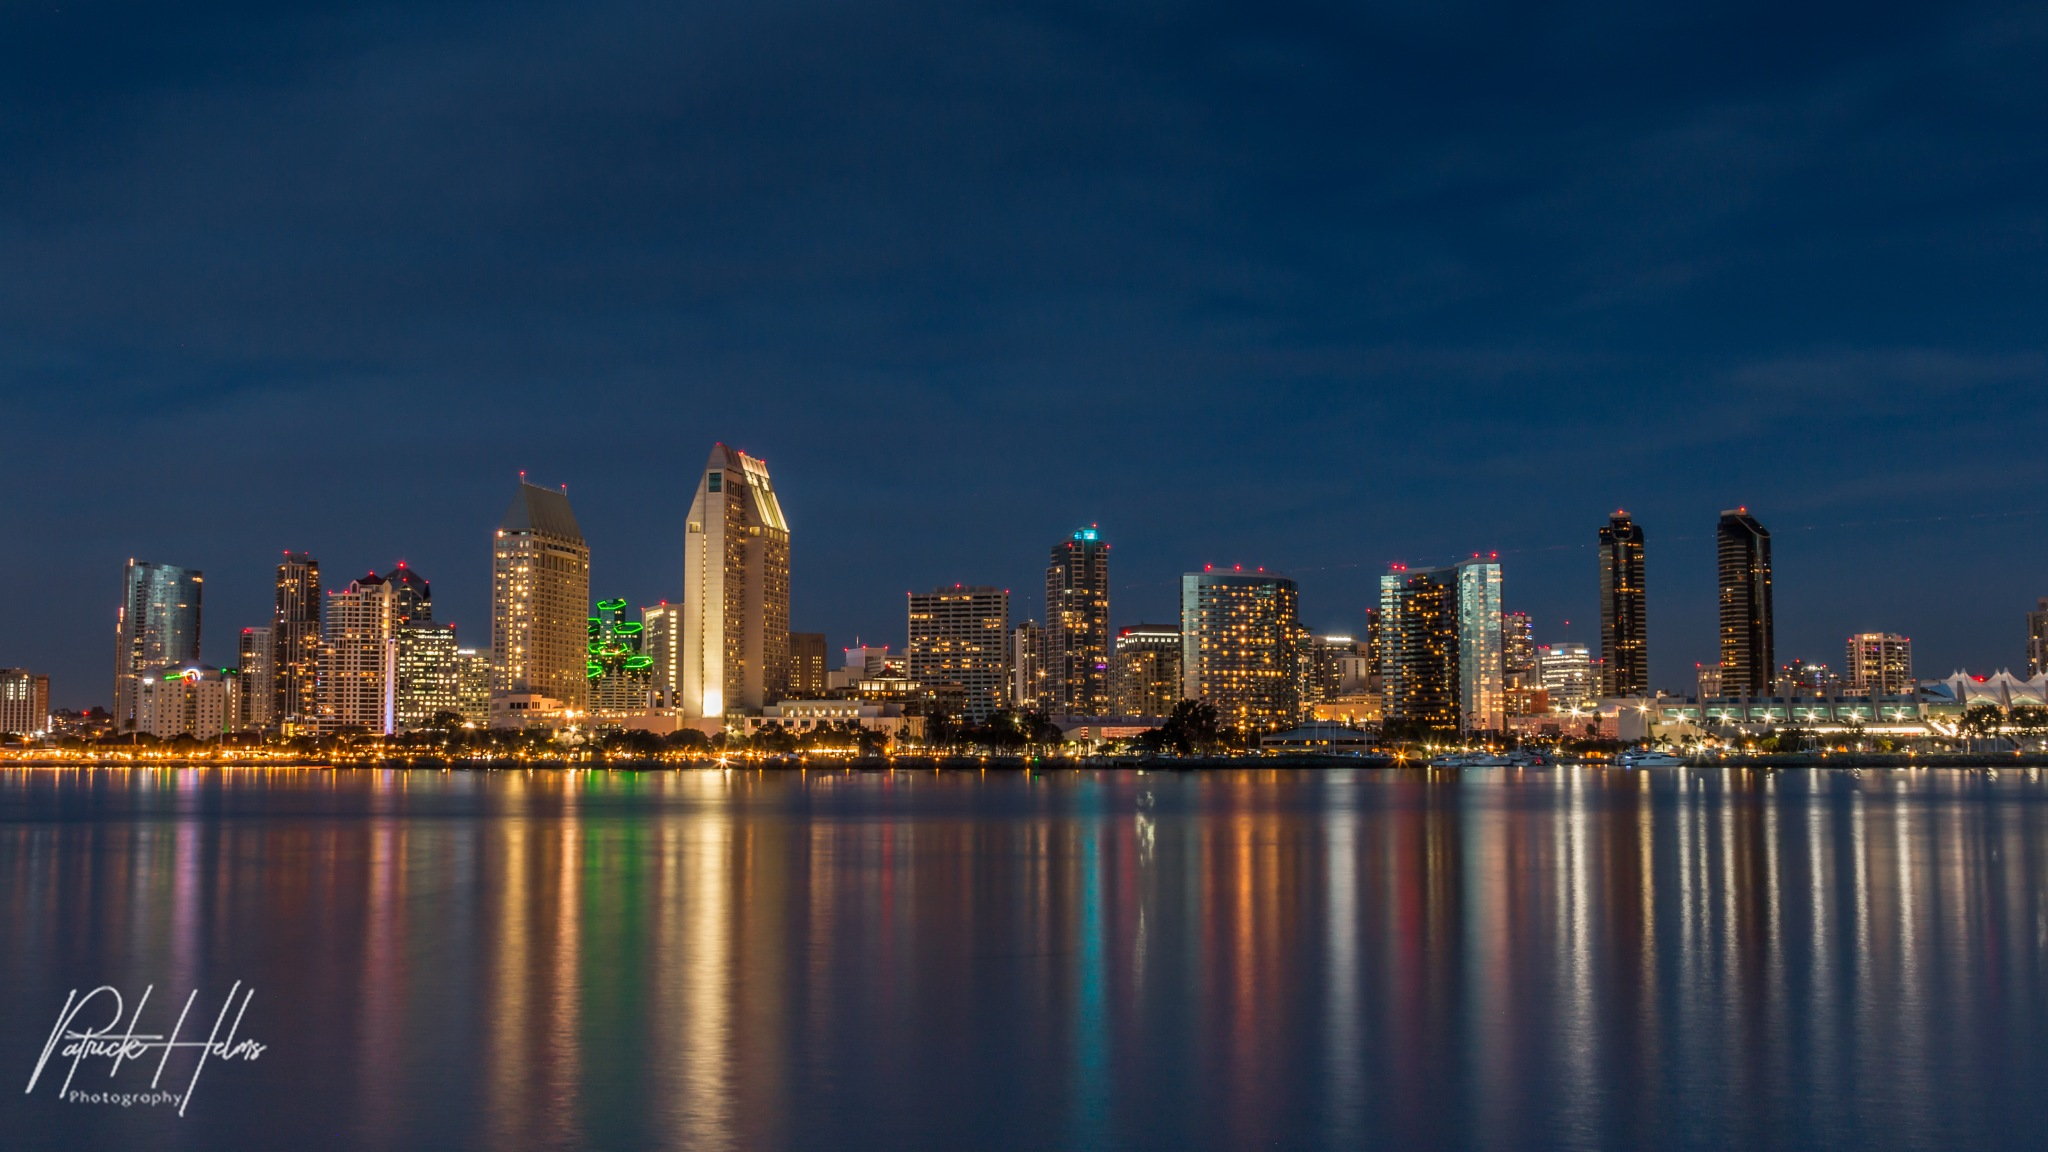 San Diego Skyline by Patrick Helms